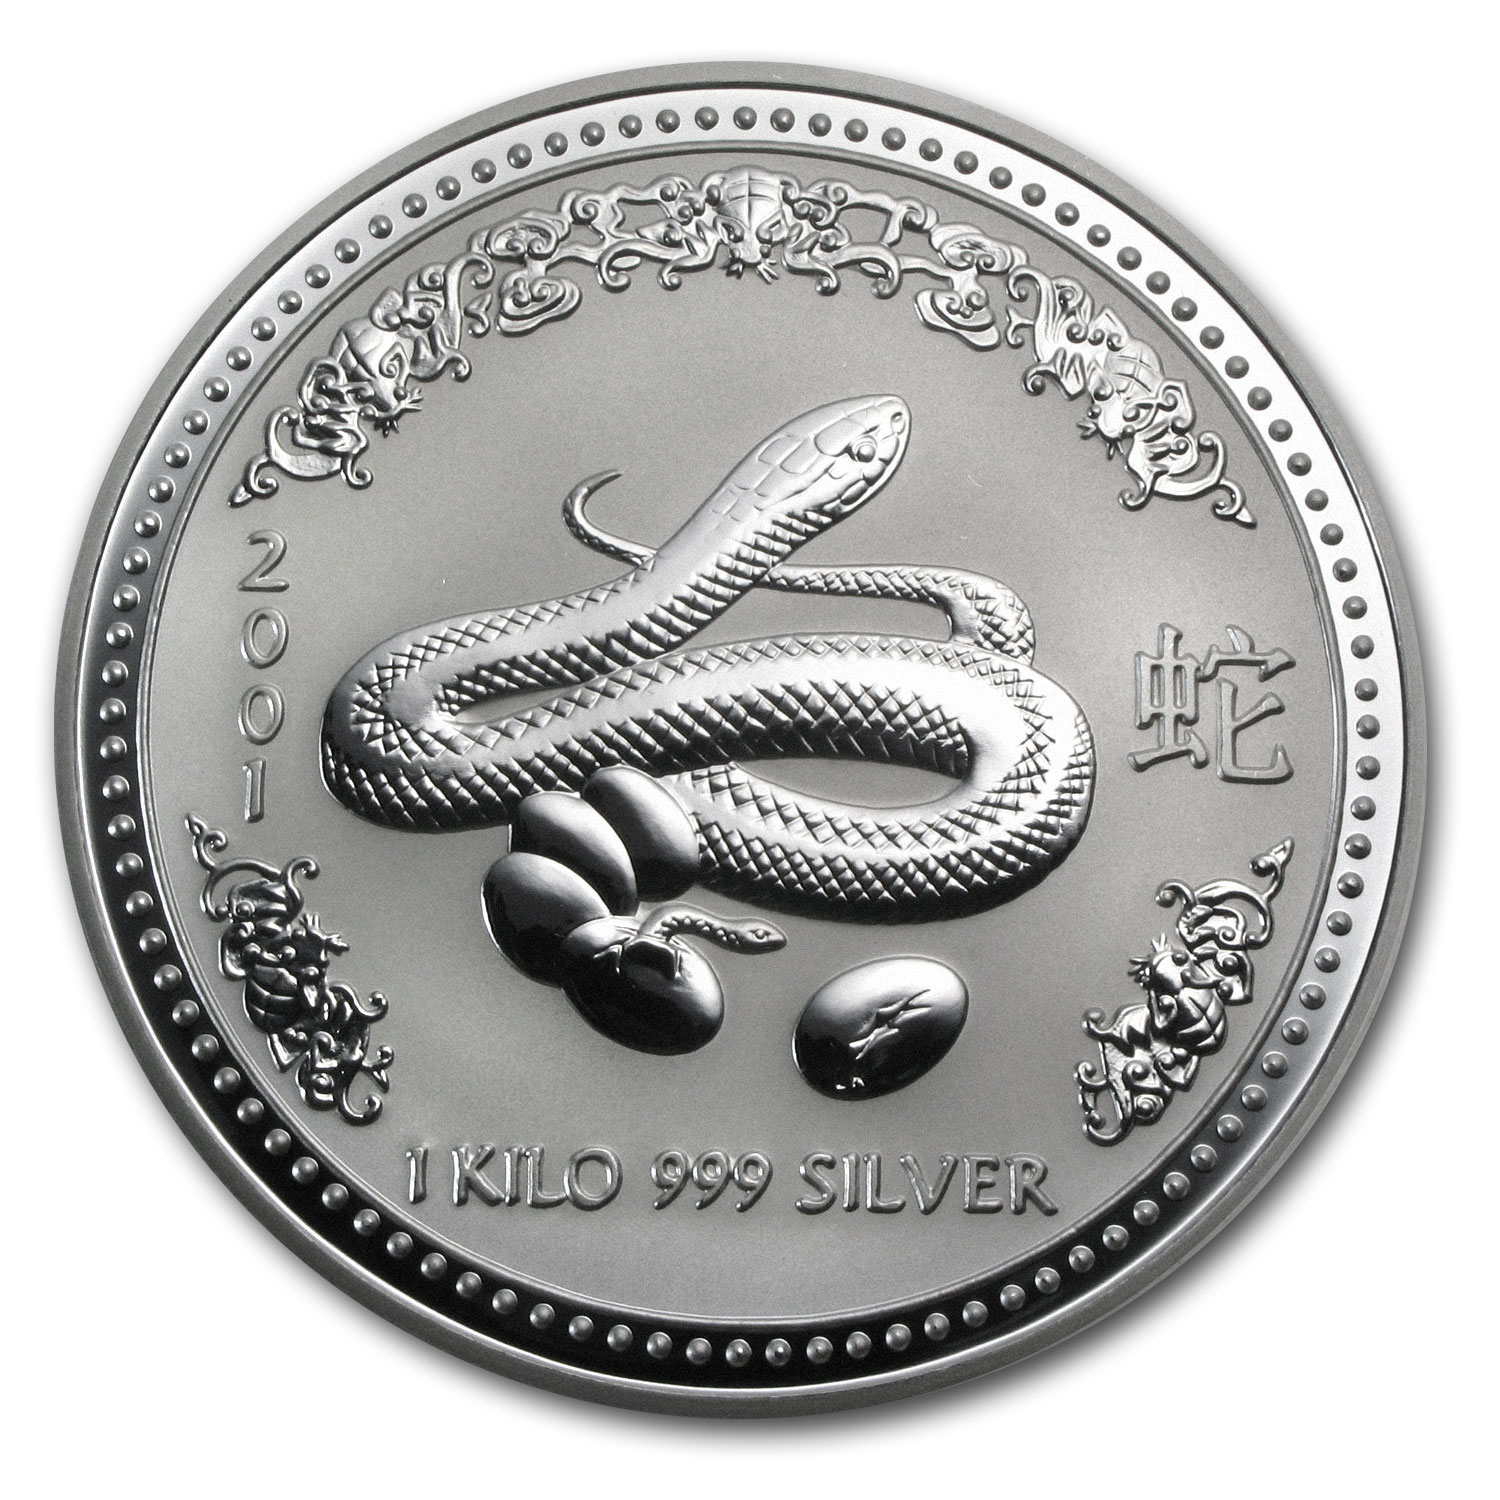 2001 1 Kilo Silver Australian Year of the Snake BU